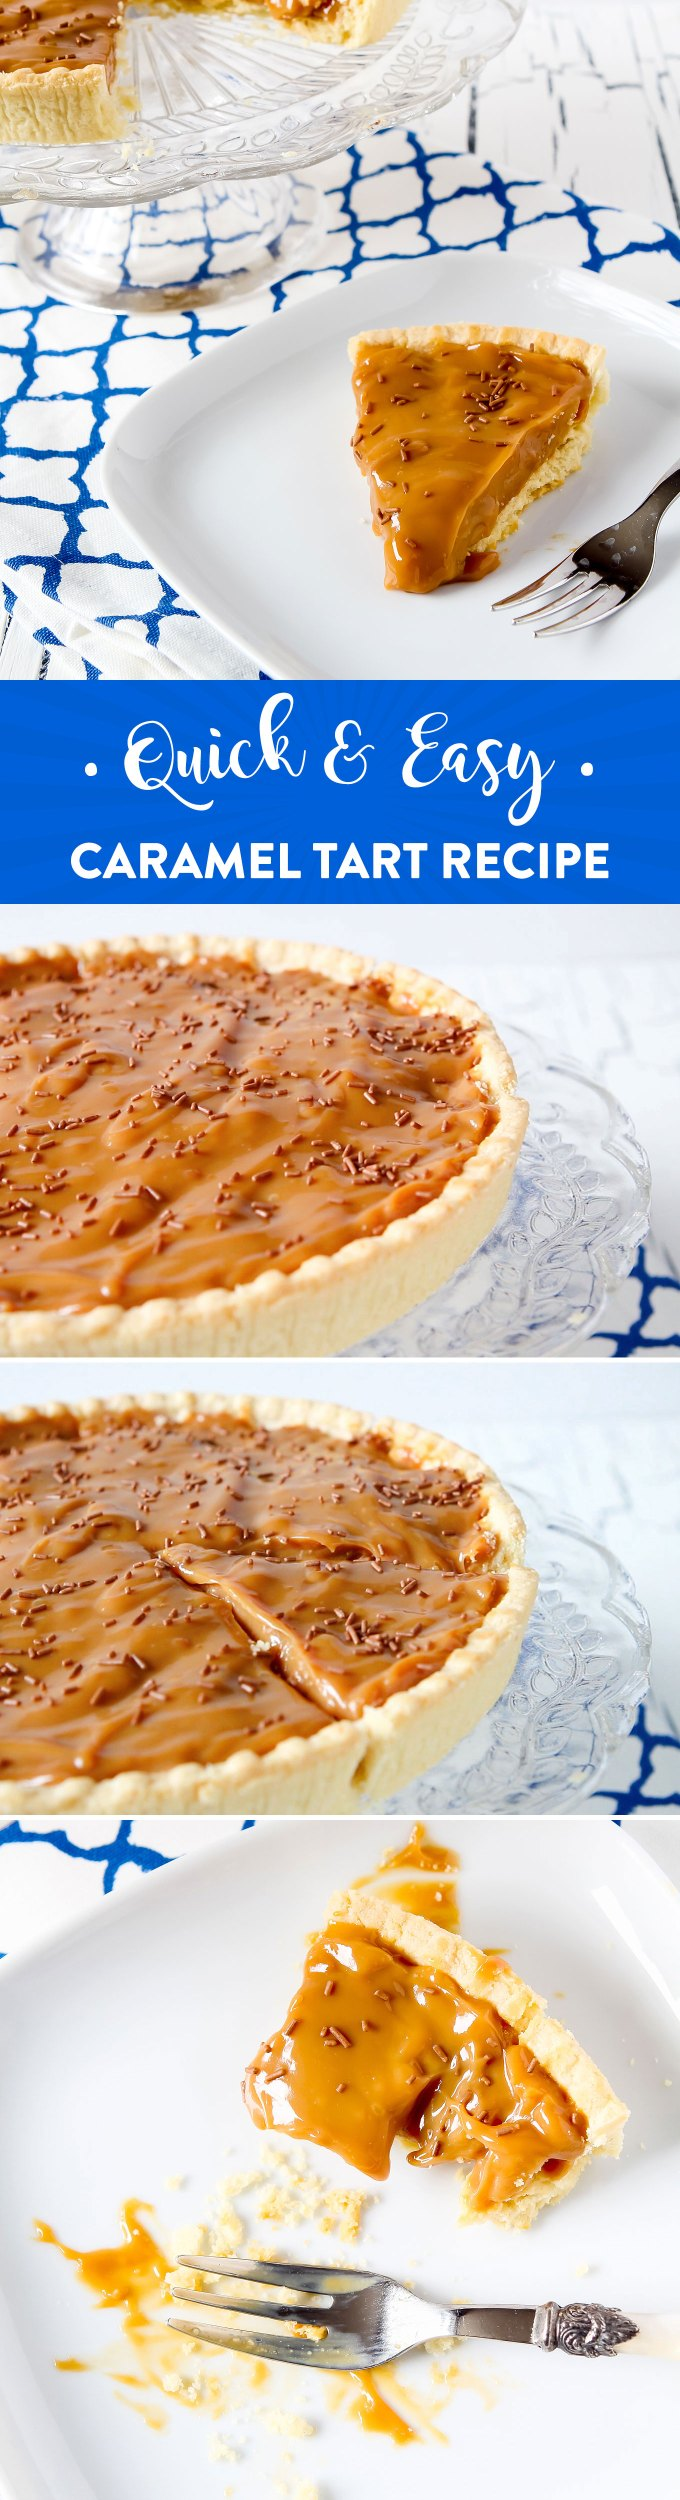 Quick and easy Caramel Tart recipe by Sweet2EatBaking.com | This rich and delicious dessert needs just 2-3 ingredients needed, and just 5 minutes of your time! Video tutorial too.